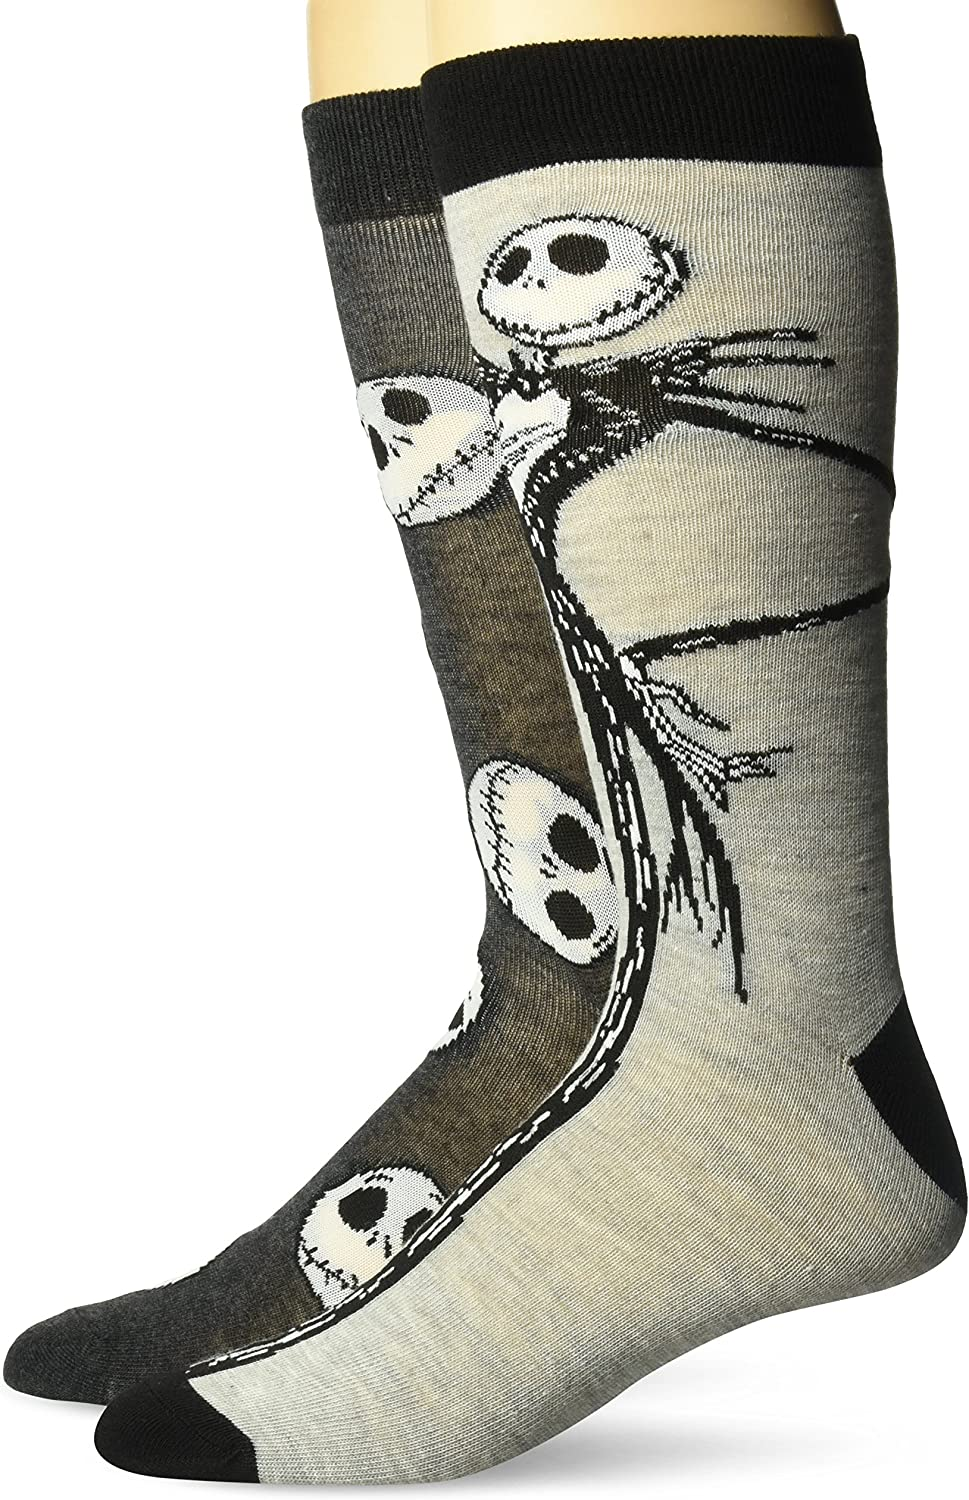 Disney Nightmare Before Christmas Men's 2 Pack Crew Socks